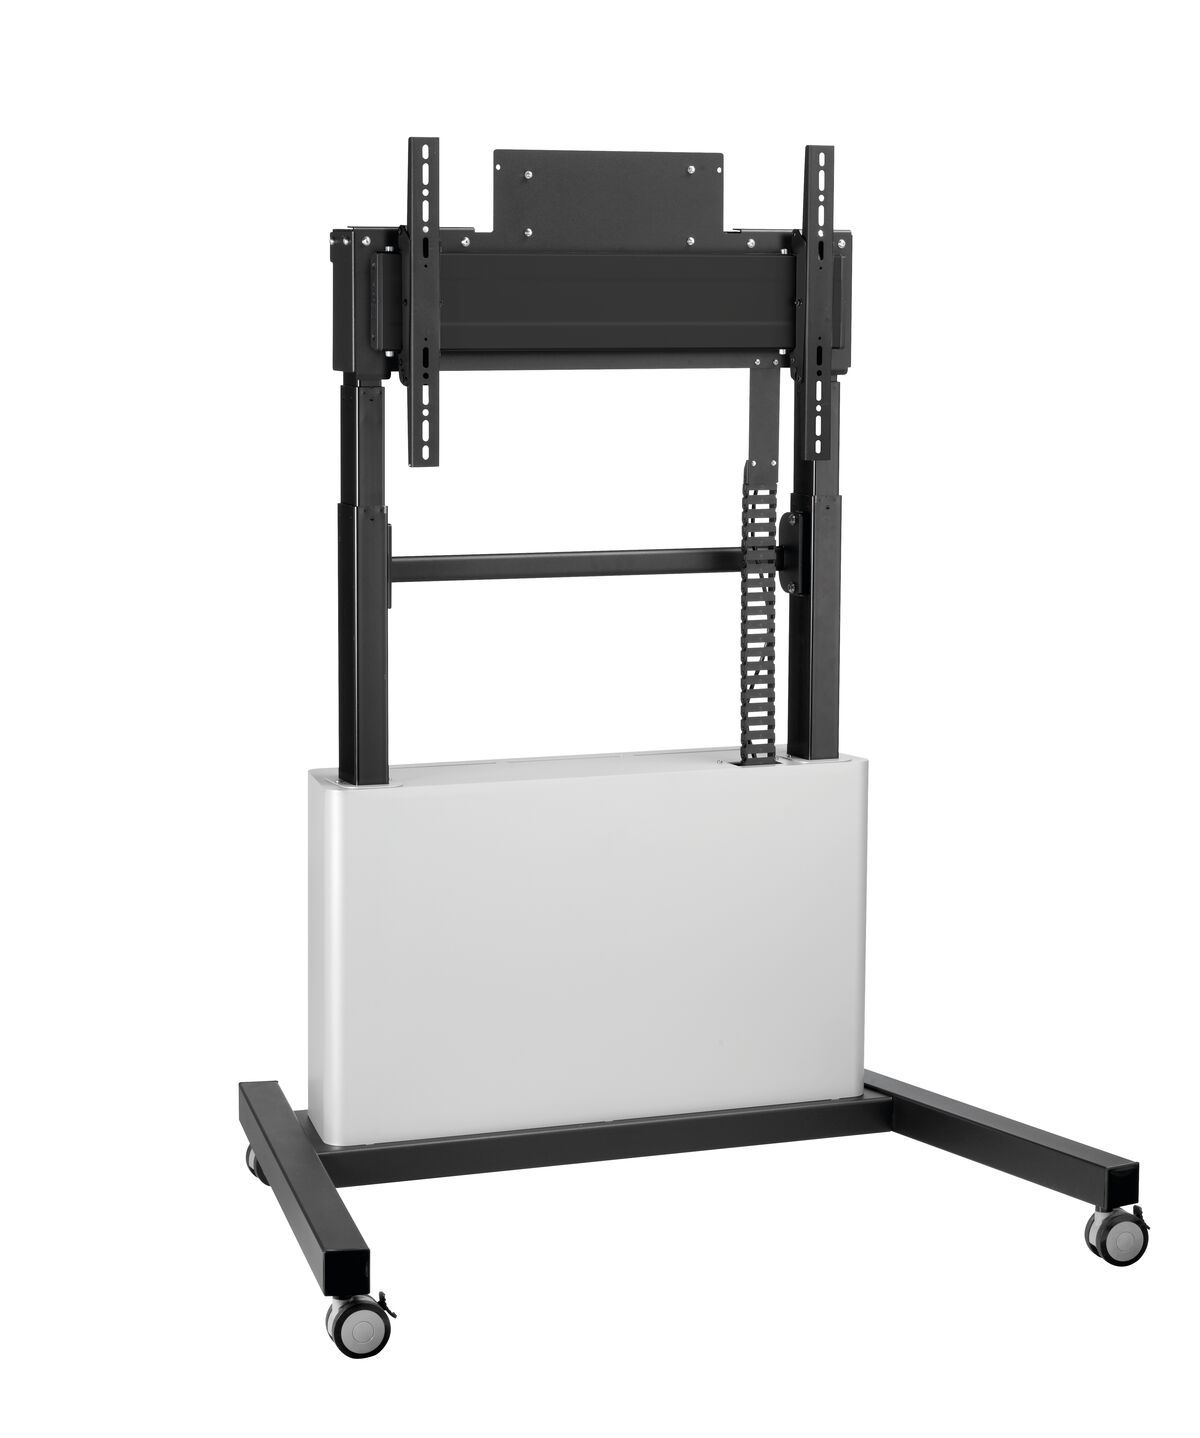 Vogel's TE1164 Motorized trolley - Product